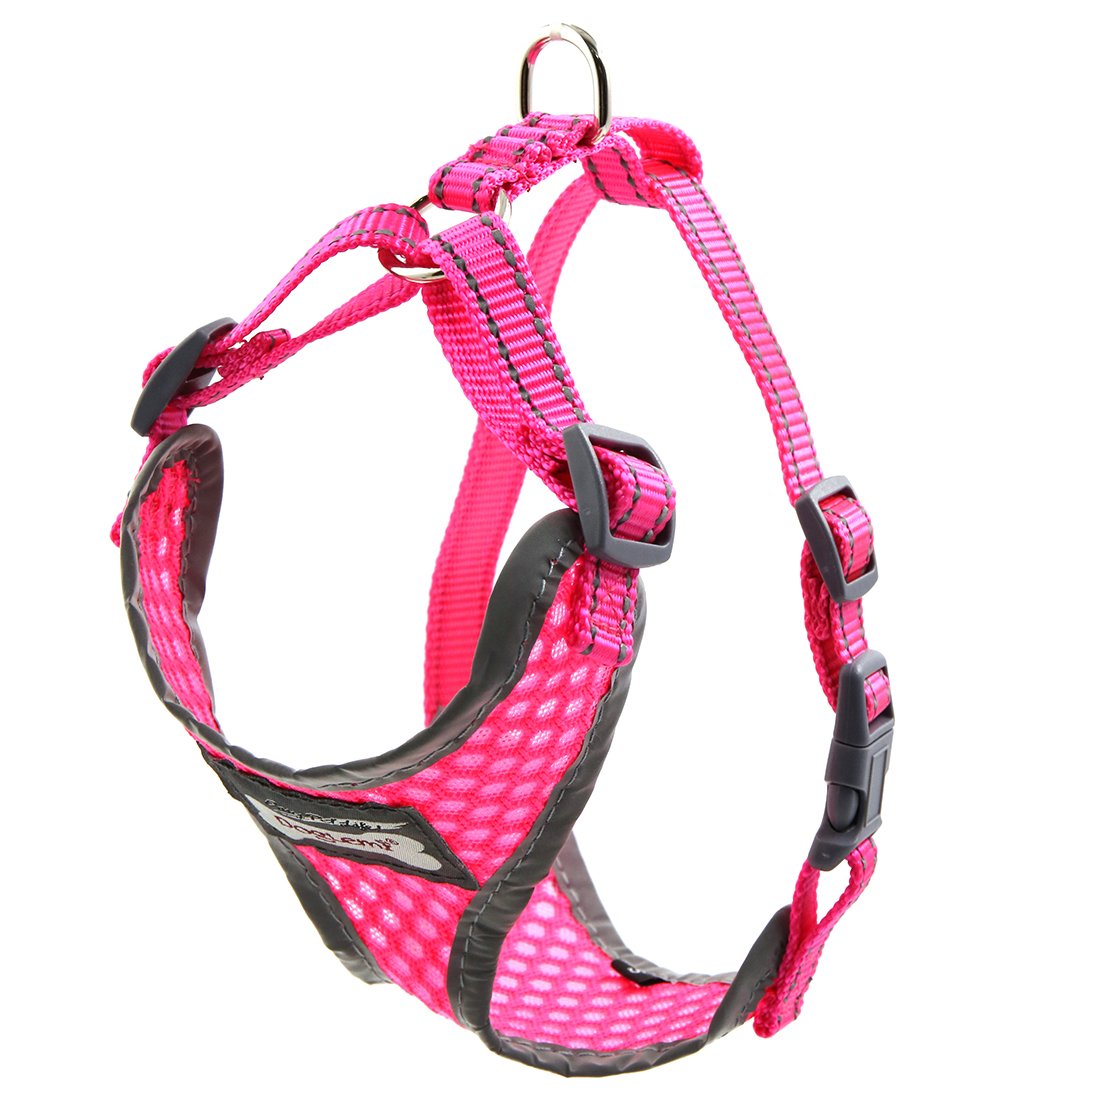 Comfort Control Dog Harness Adjustable Breathable Soft Air Mesh Puppy Harnesses Walk Collar Reflective Vest Fuchsia S